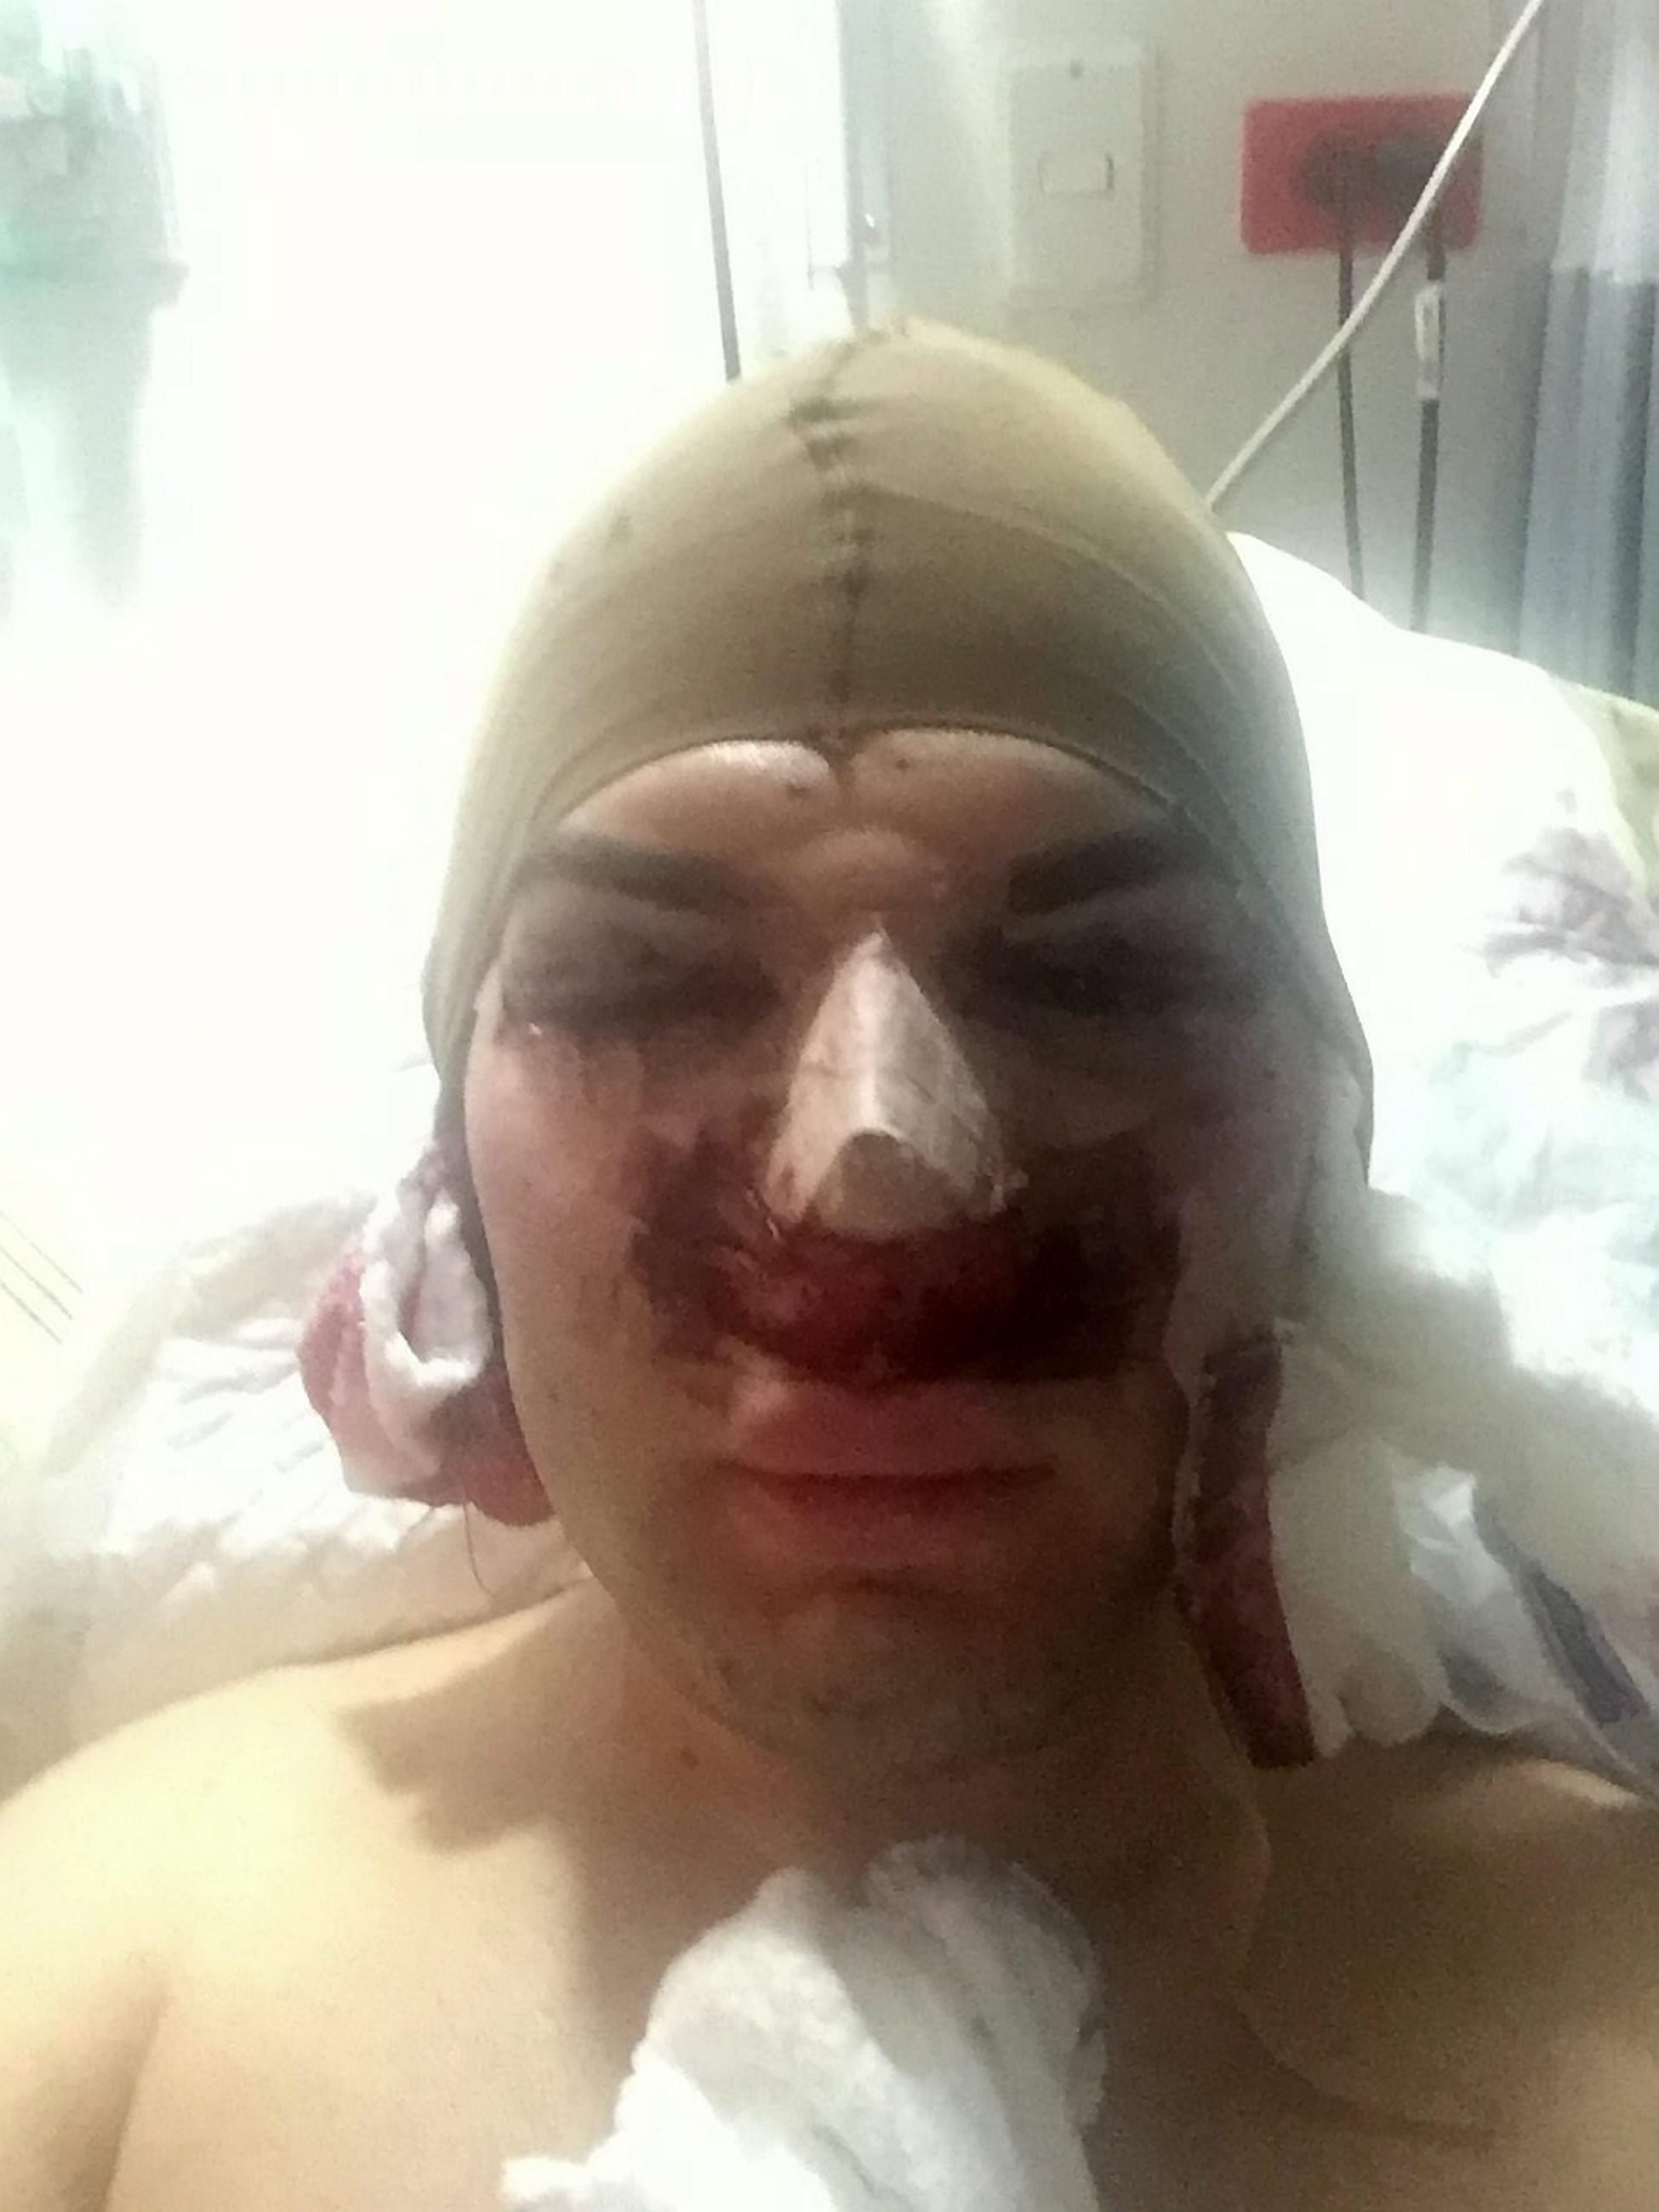 Plastic Surgery Addict Admitted To Hospital With Rotting Nose nose99